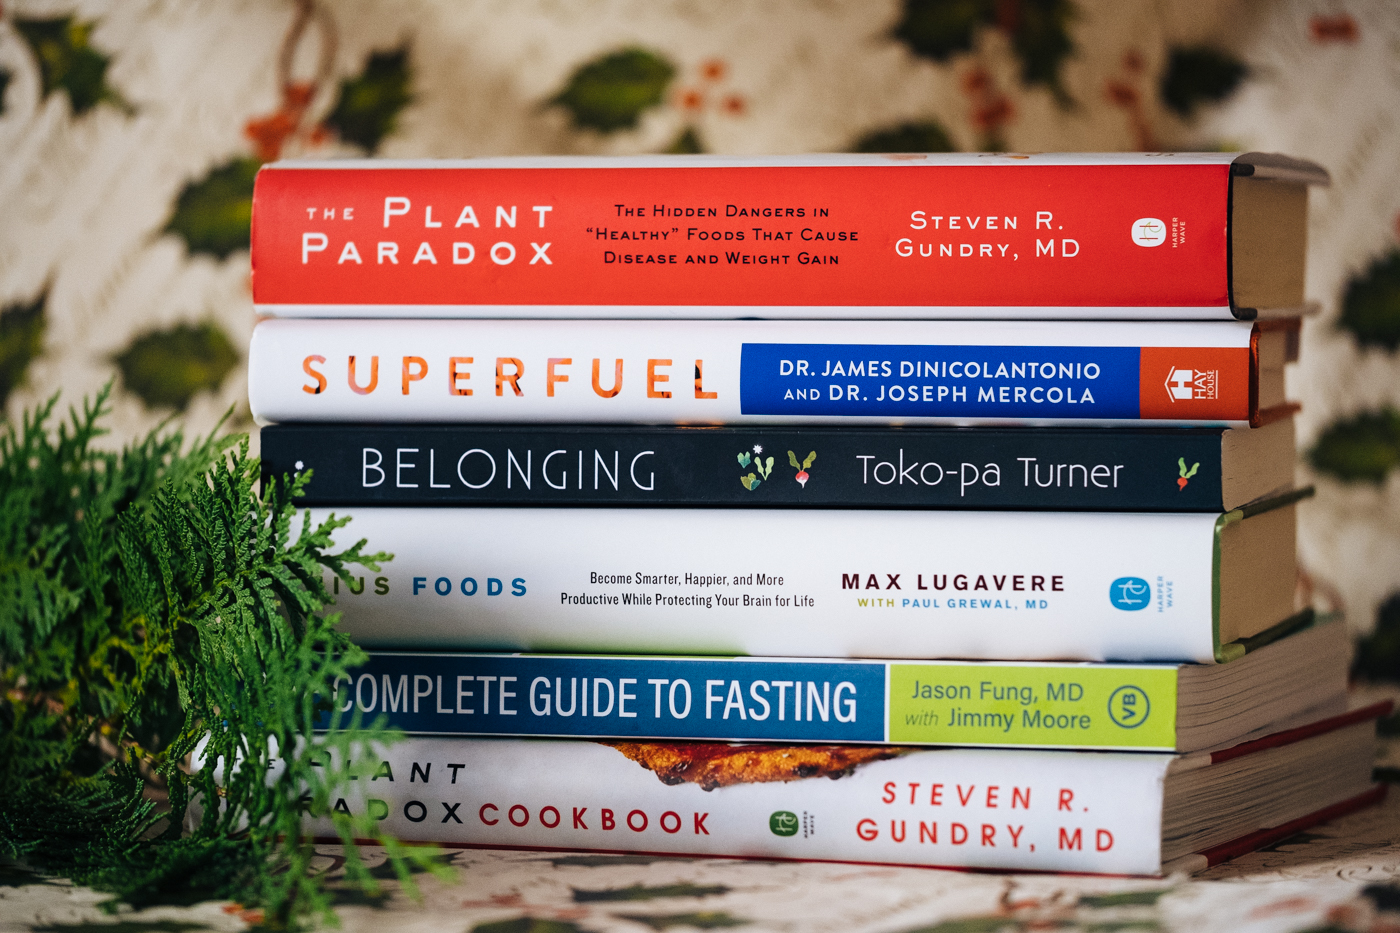 Plant paradox approved gift guide, books for the book lovers